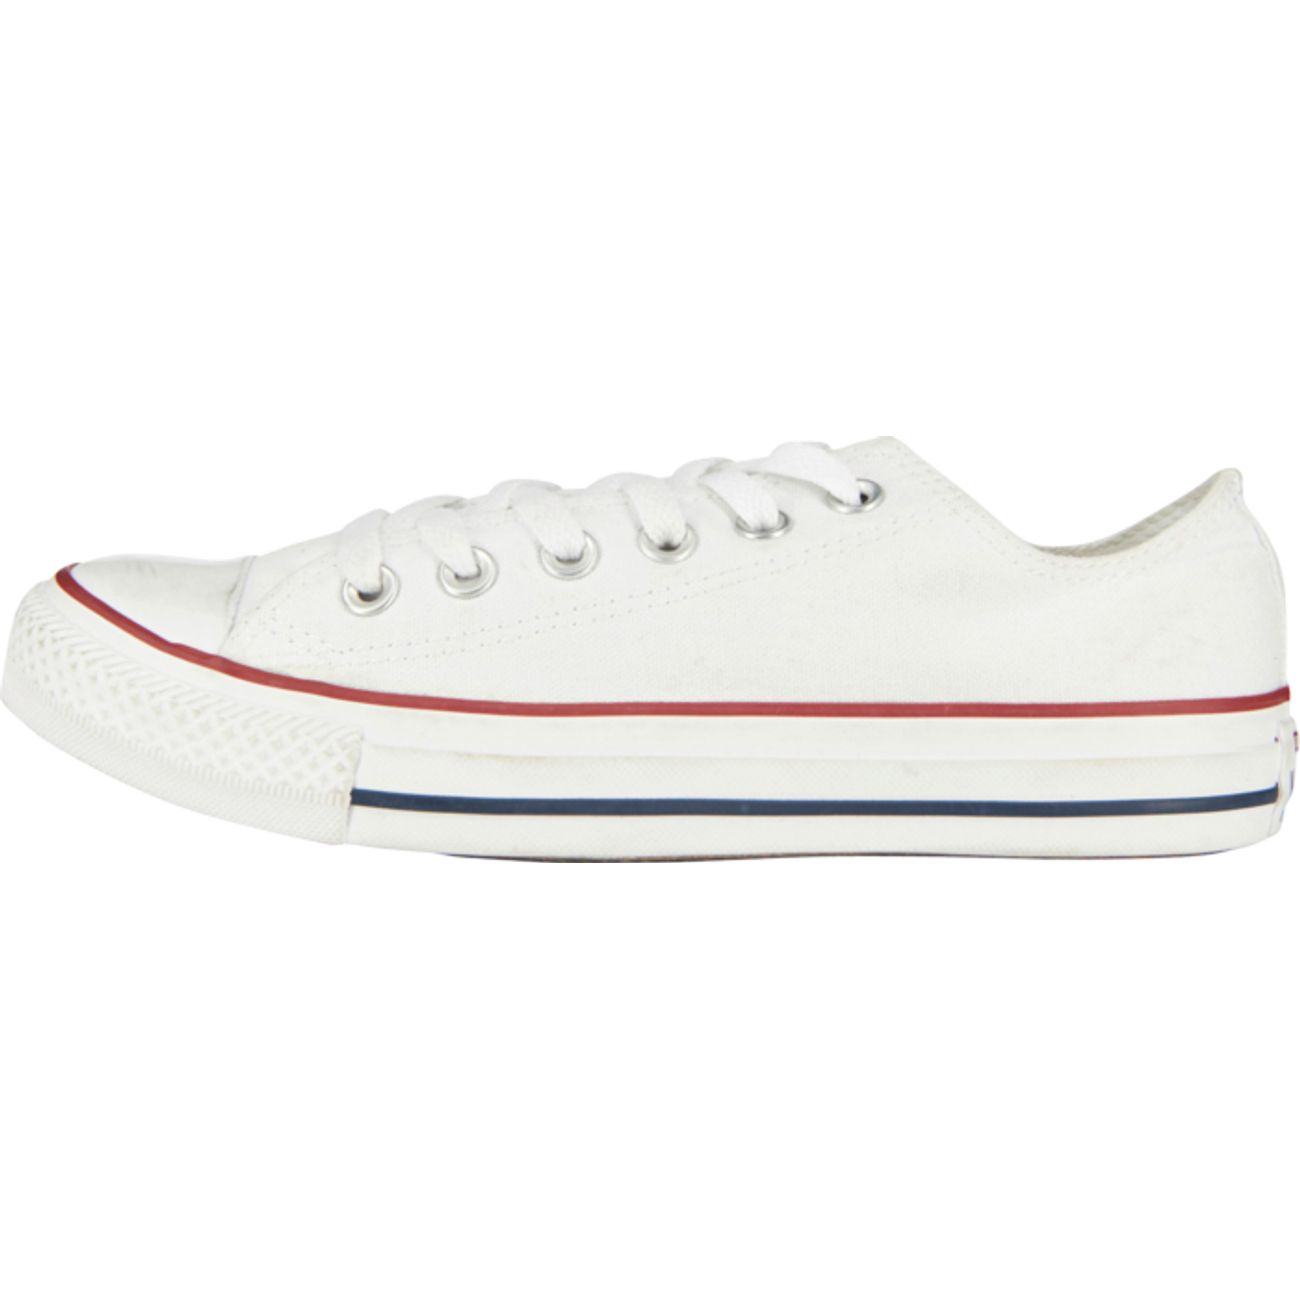 CHAUSSURES BASSES Loisirs femme CONVERSE CHUCK TAYLOR LOW